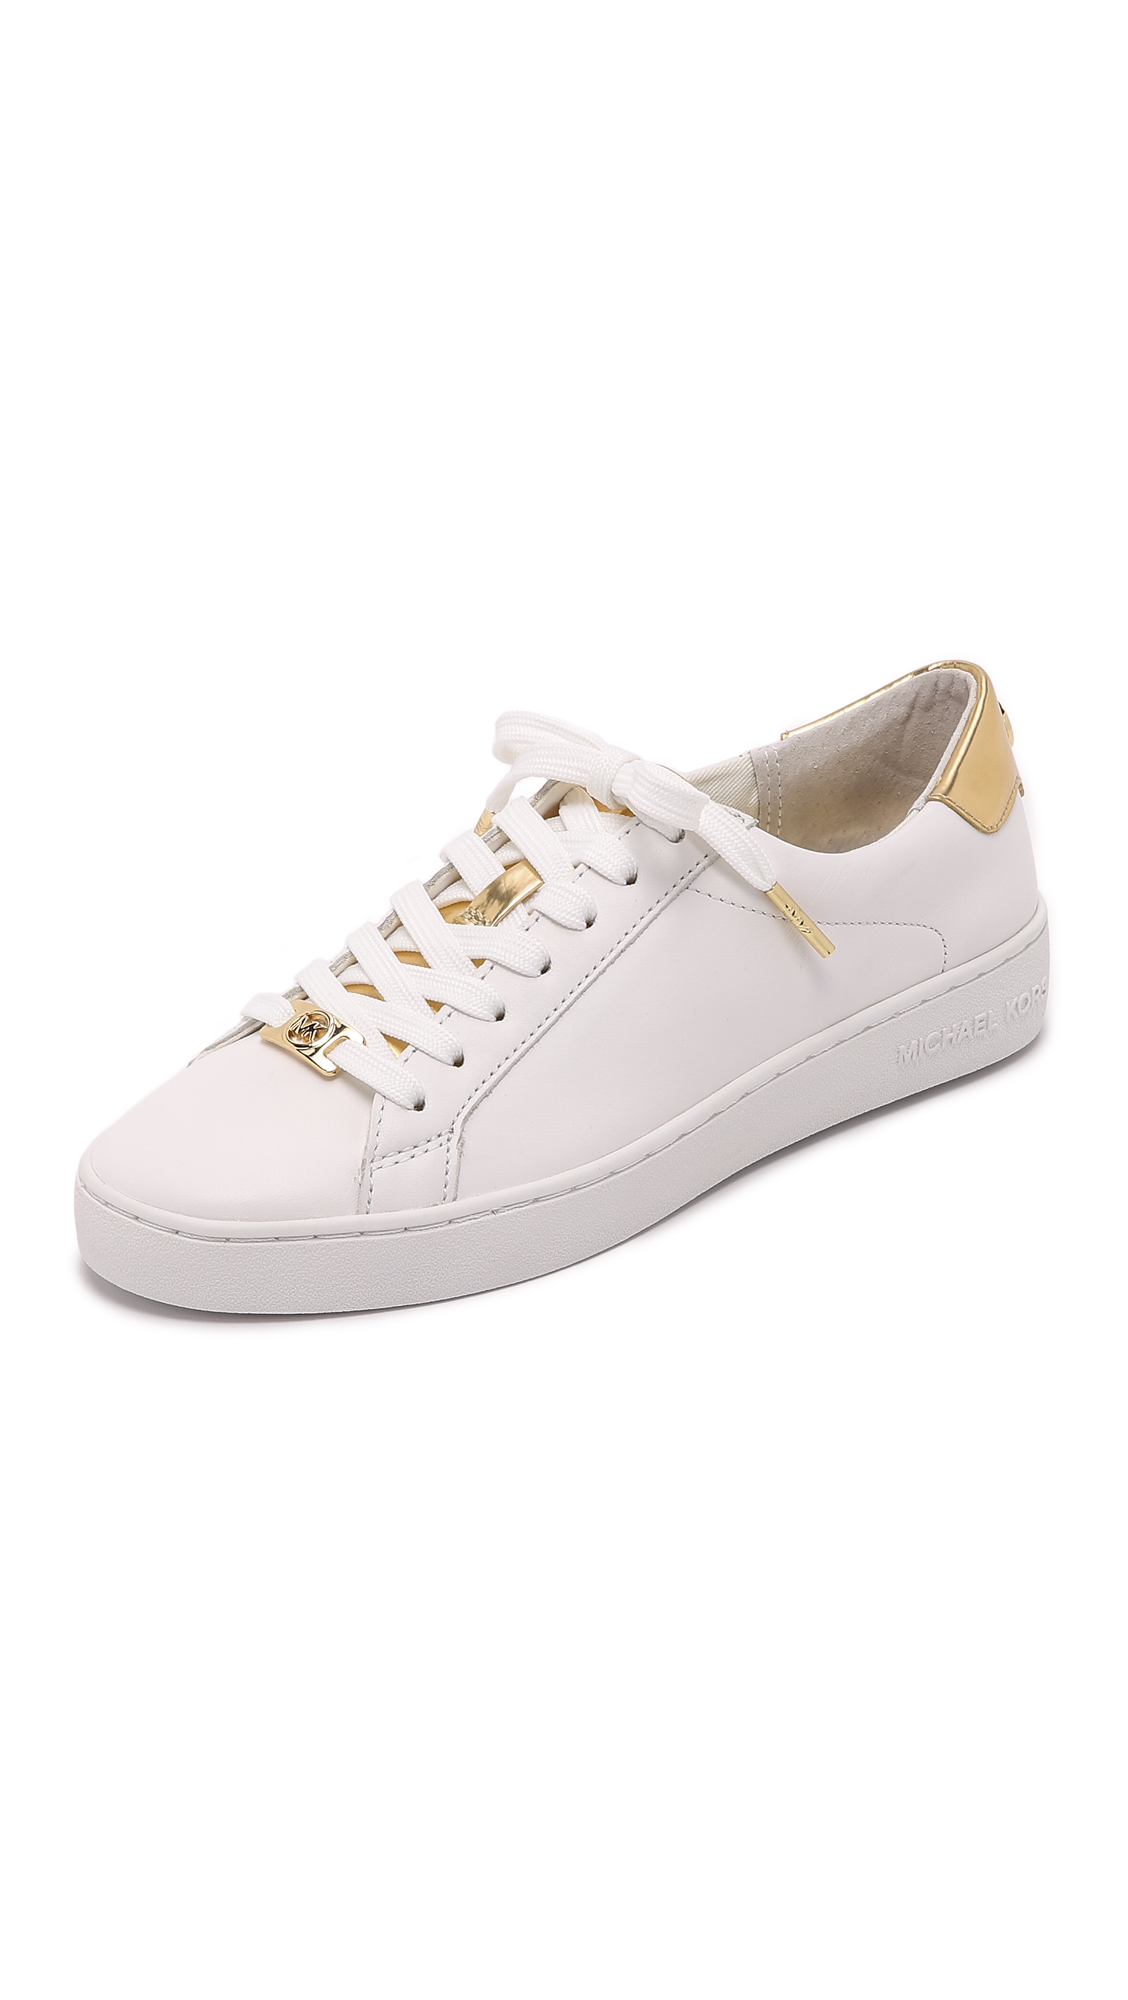 MICHAEL Michael Kors Irving Sneakers - Optic/Pale Gold